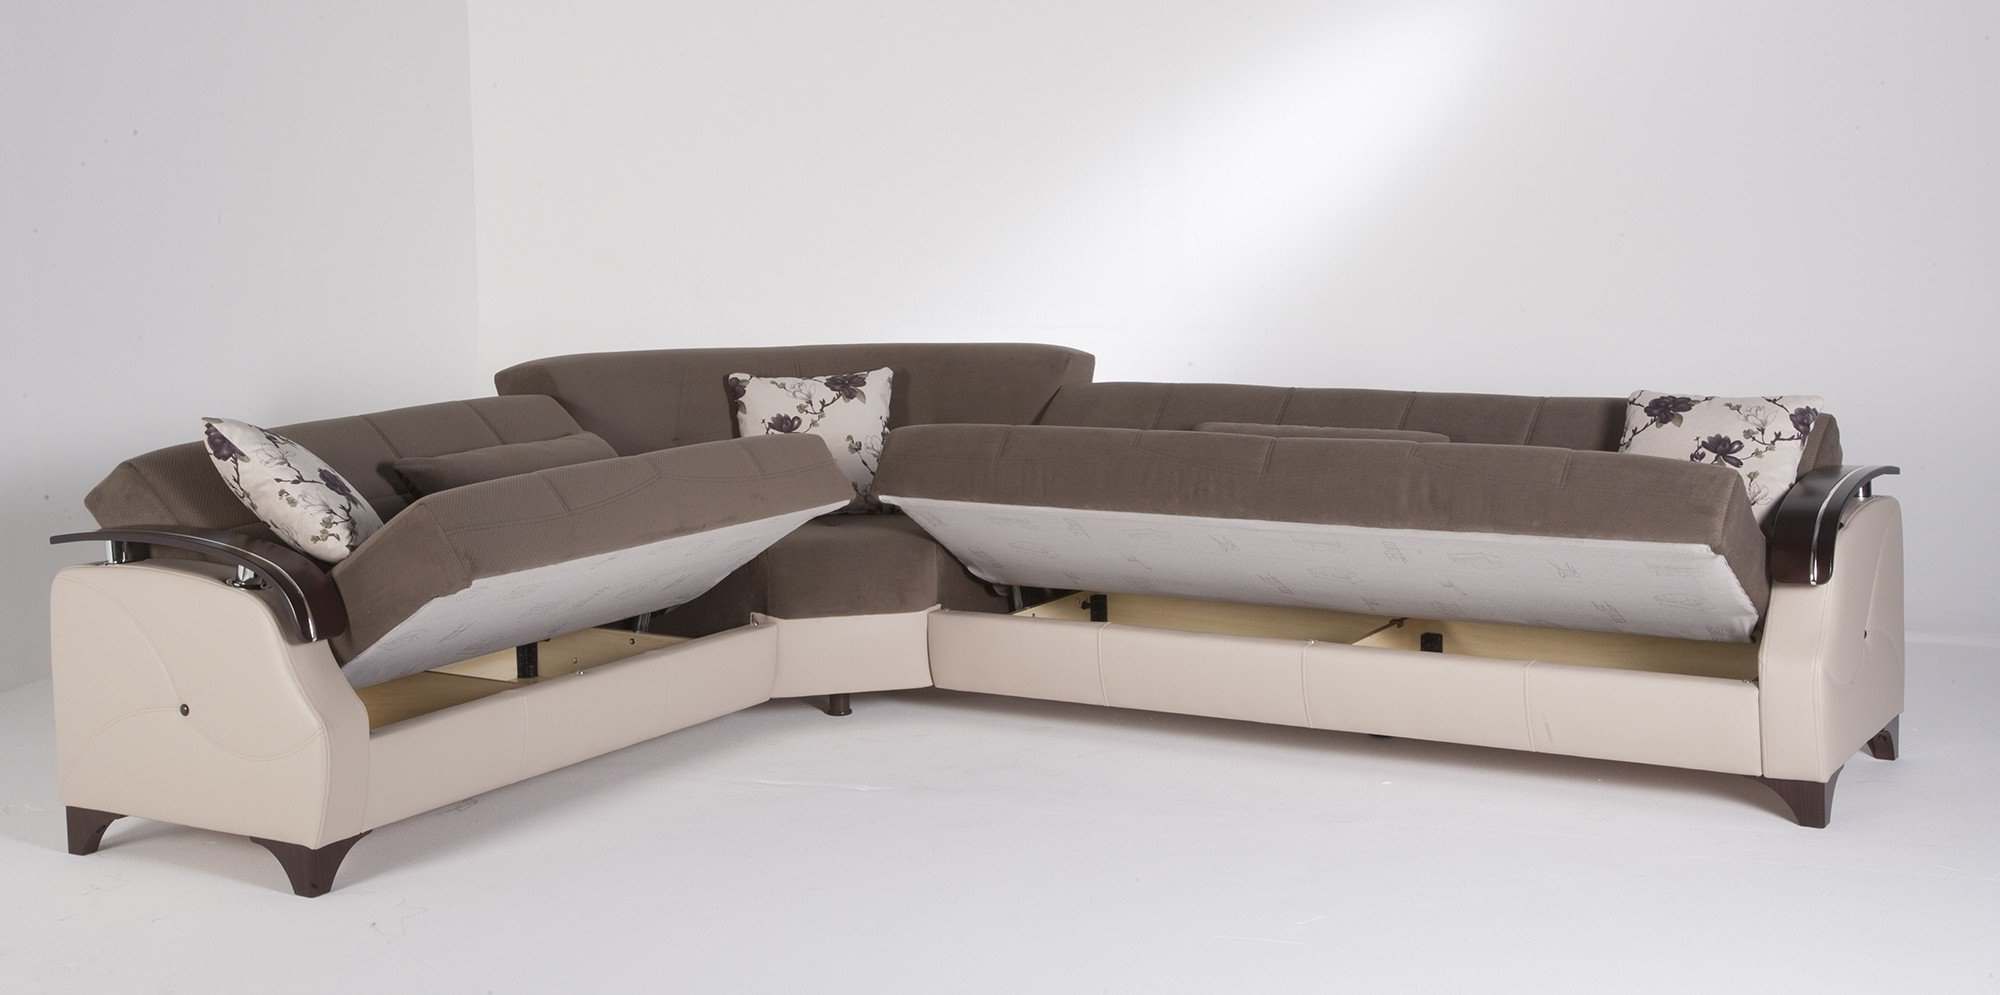 Sofas Cheap Sofa Sleepers Sleeper Sectional Sofa Comfortable With For Popular Sectional Sofas With Sleeper (View 4 of 20)